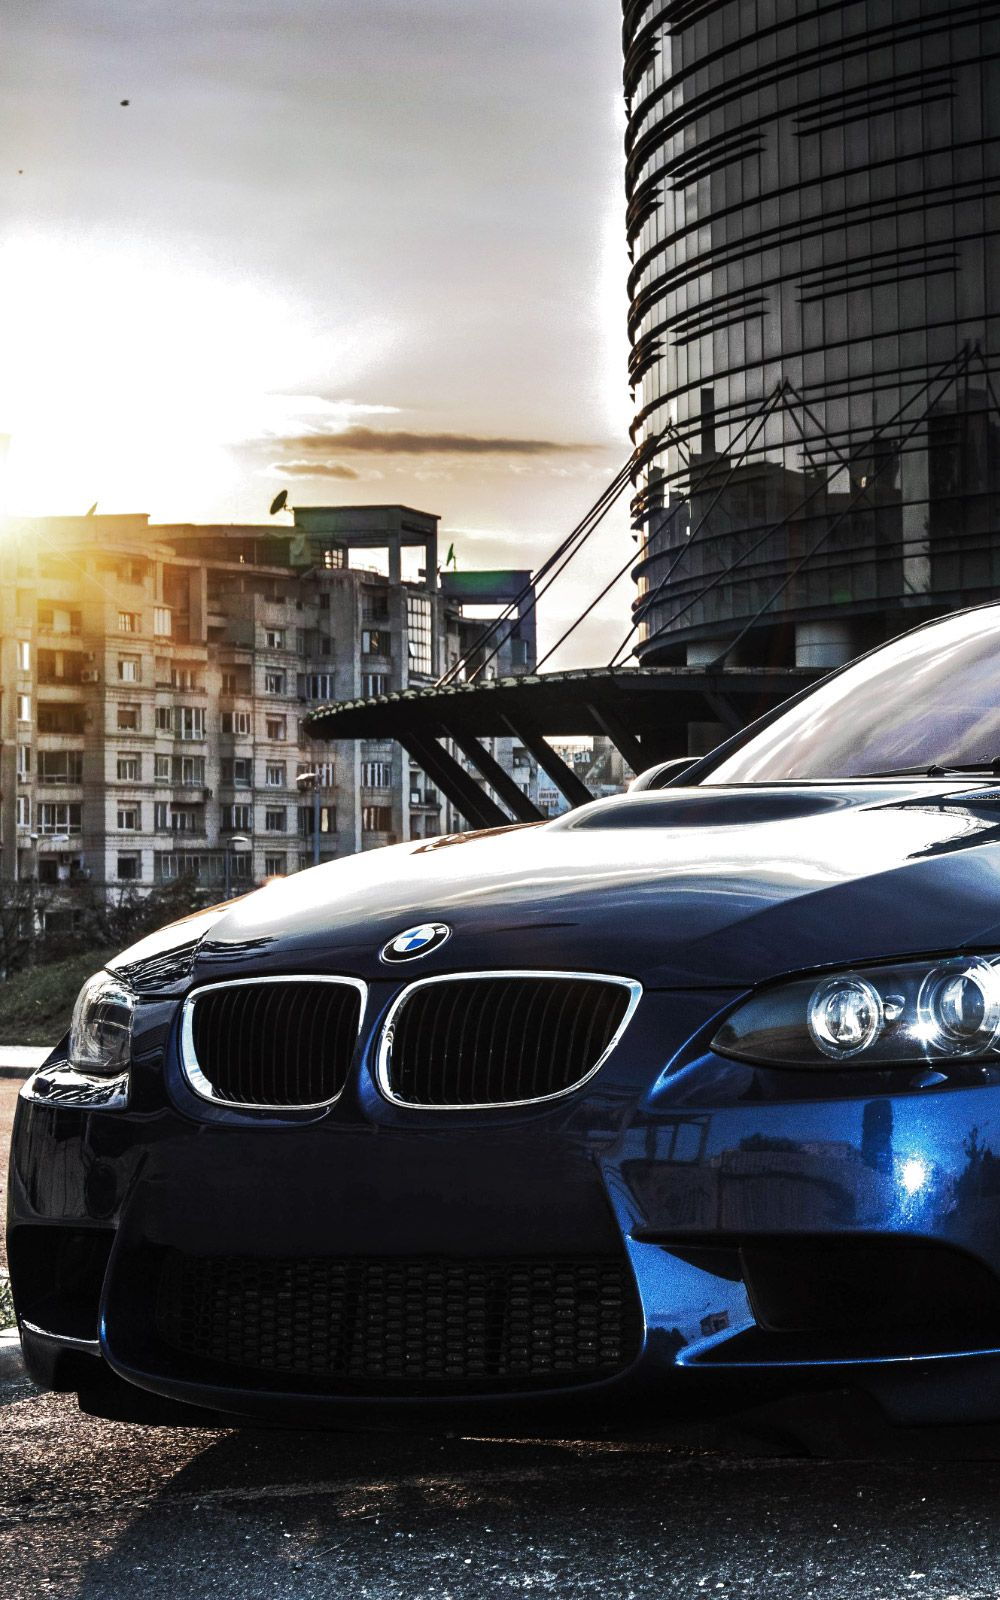 Bmw Car Mobile Wallpaper Mobile Wallpaper Pinterest